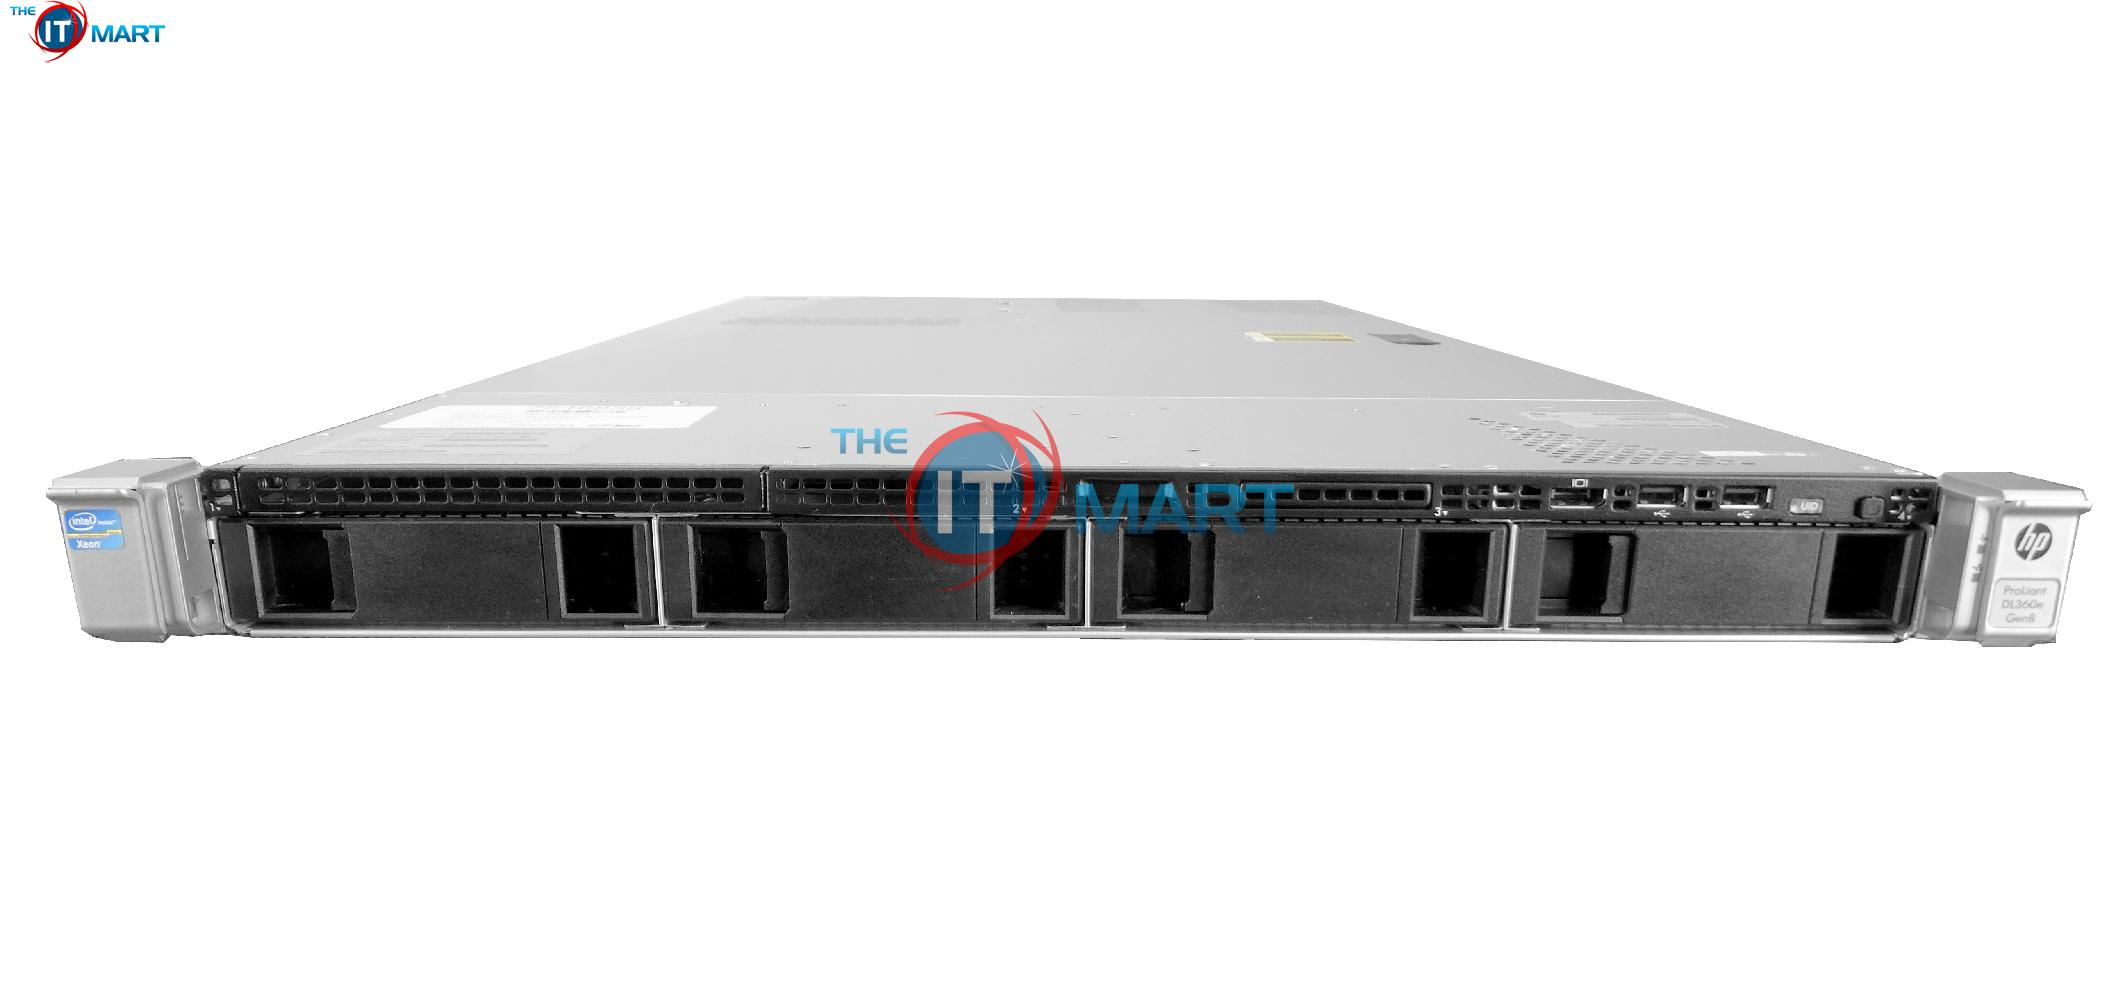 2X Intel Xeon E5-2630L 2.0GHz 6C No Rails HP ProLiant DL360p G8 8-Bay SFF 1U Server Certified Refurbished 2X Trays Included P420i RAID 2X 460W PSUs 16GB DDR3